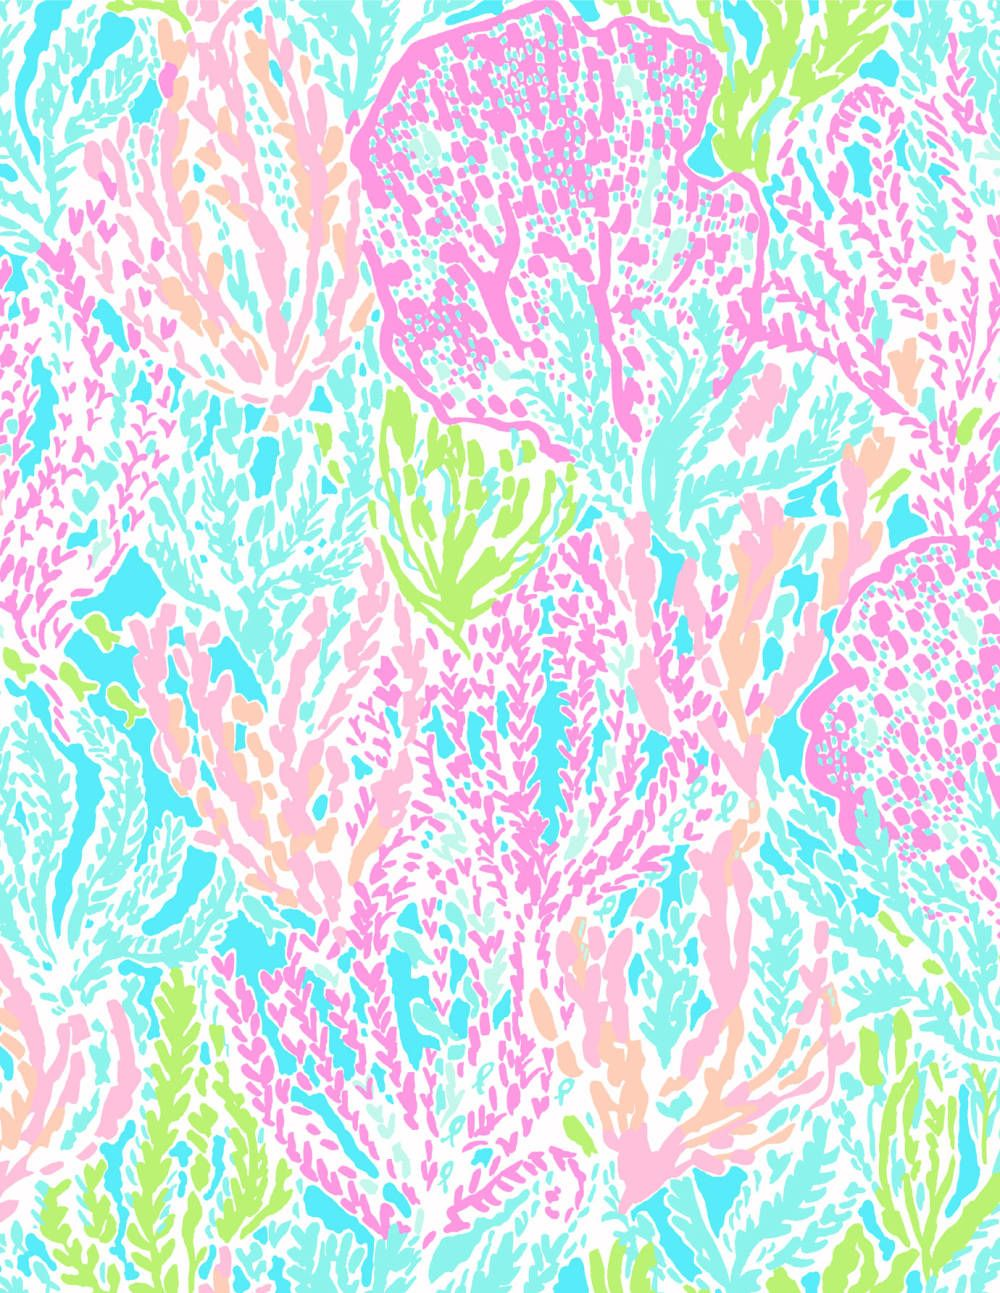 Lilly Pulitzer Patterns 9 Of The Most Popular Lilly Pulitzer Prints From The Past Lilly